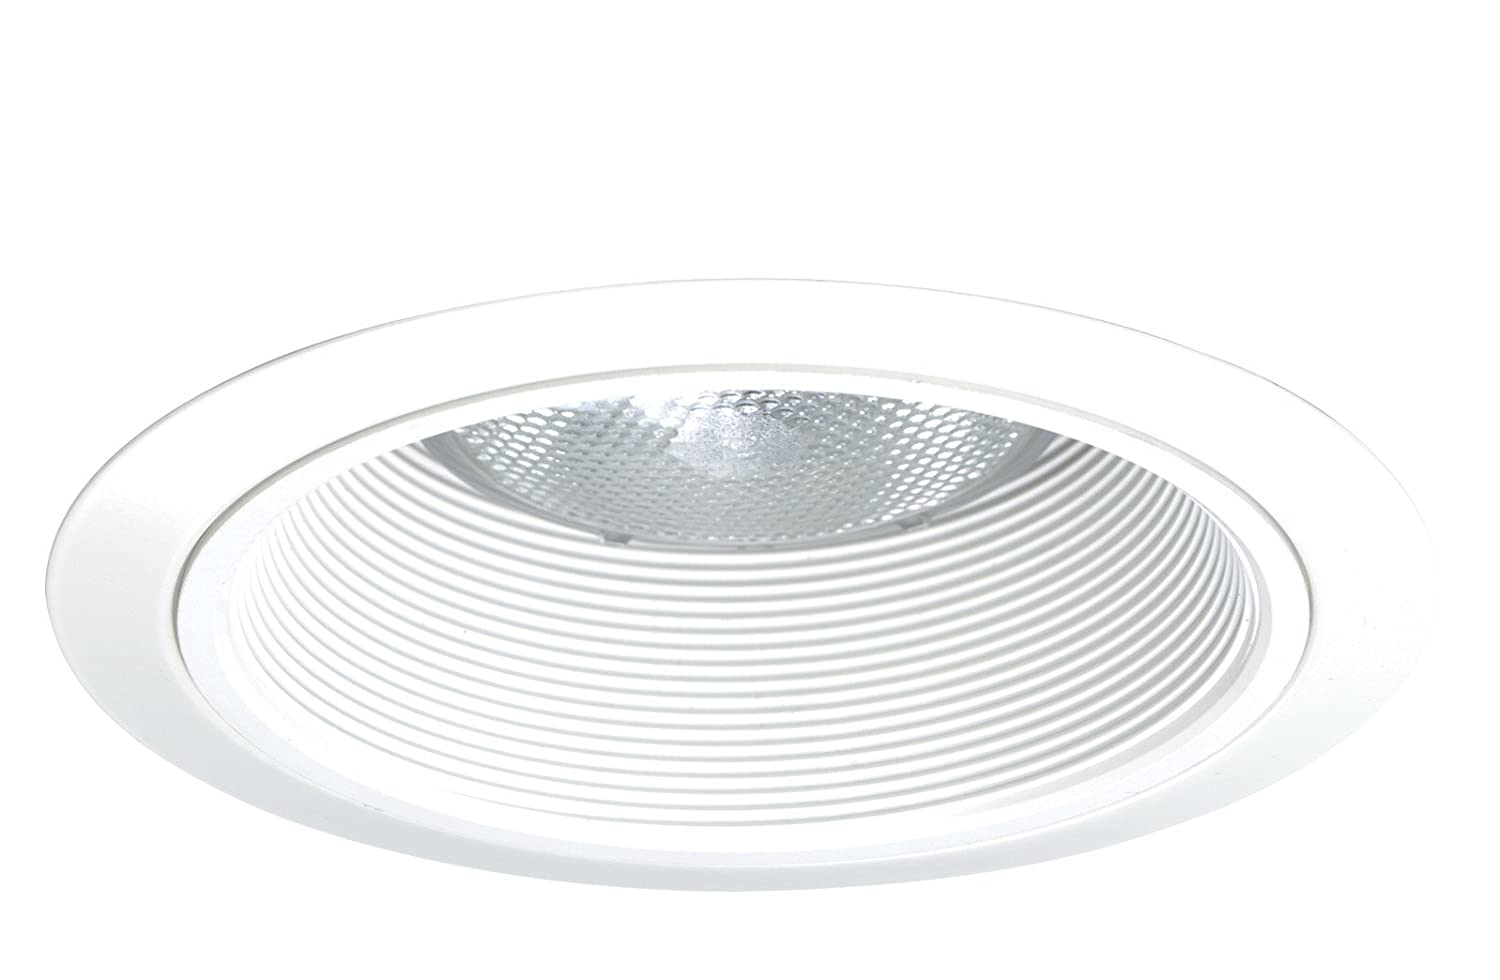 Juno Lighting 24W-WH 6-Inch Tapered Downlight Baffle White with White Trim - Close To Ceiling Light Fixtures - Amazon.com  sc 1 st  Amazon.com : recessed light baffles - www.canuckmediamonitor.org